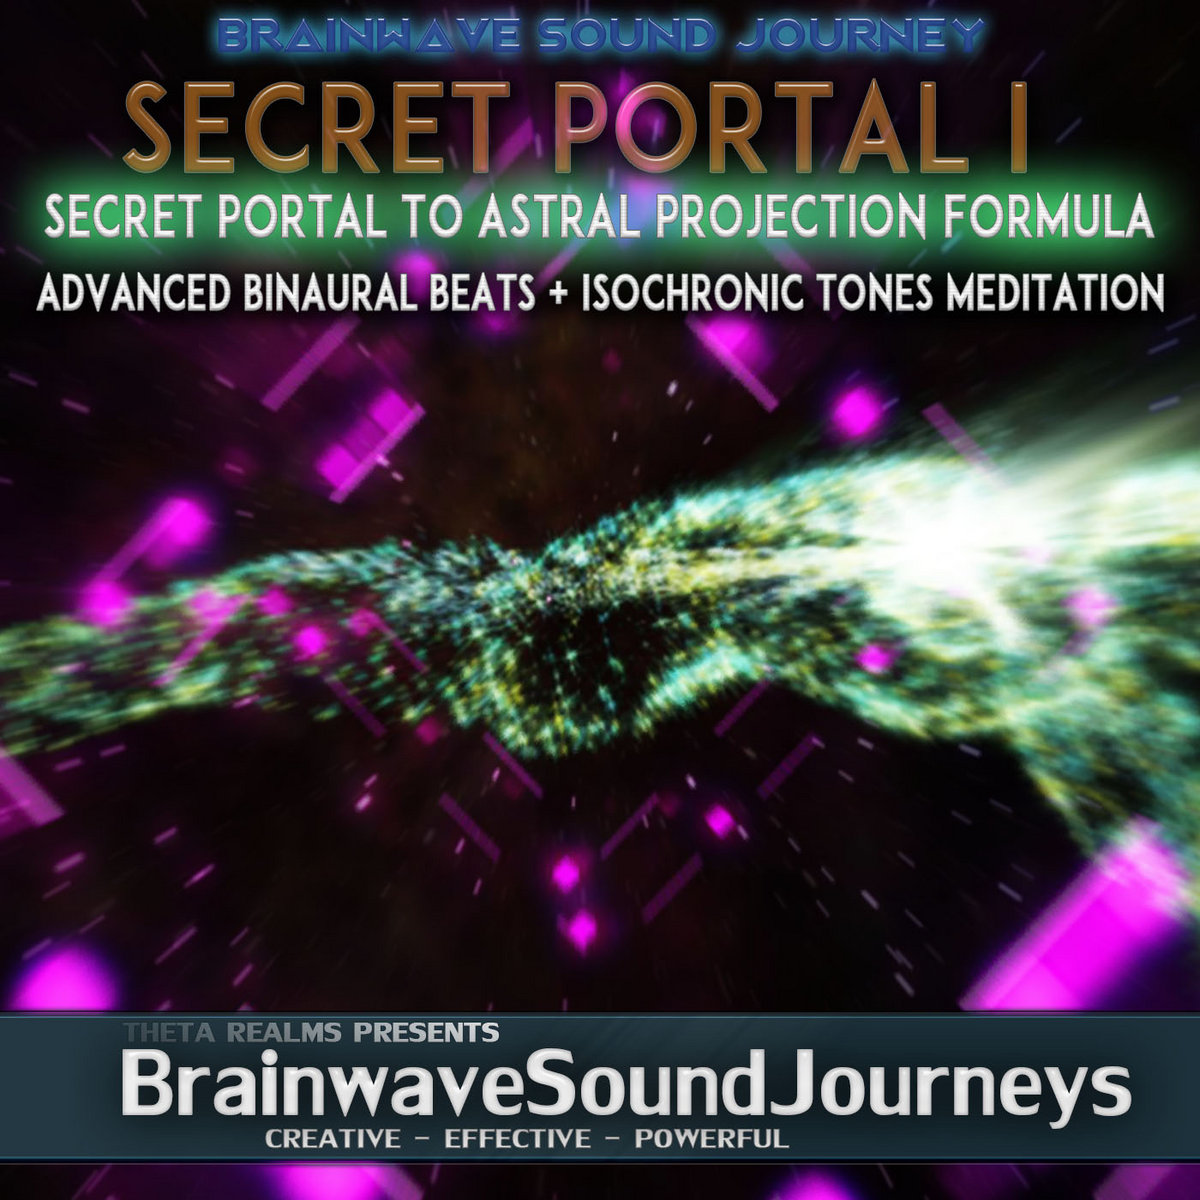 SECRET PORTAL FOR ASTRAL PROJECTION I: Binaural Beats Isochronic